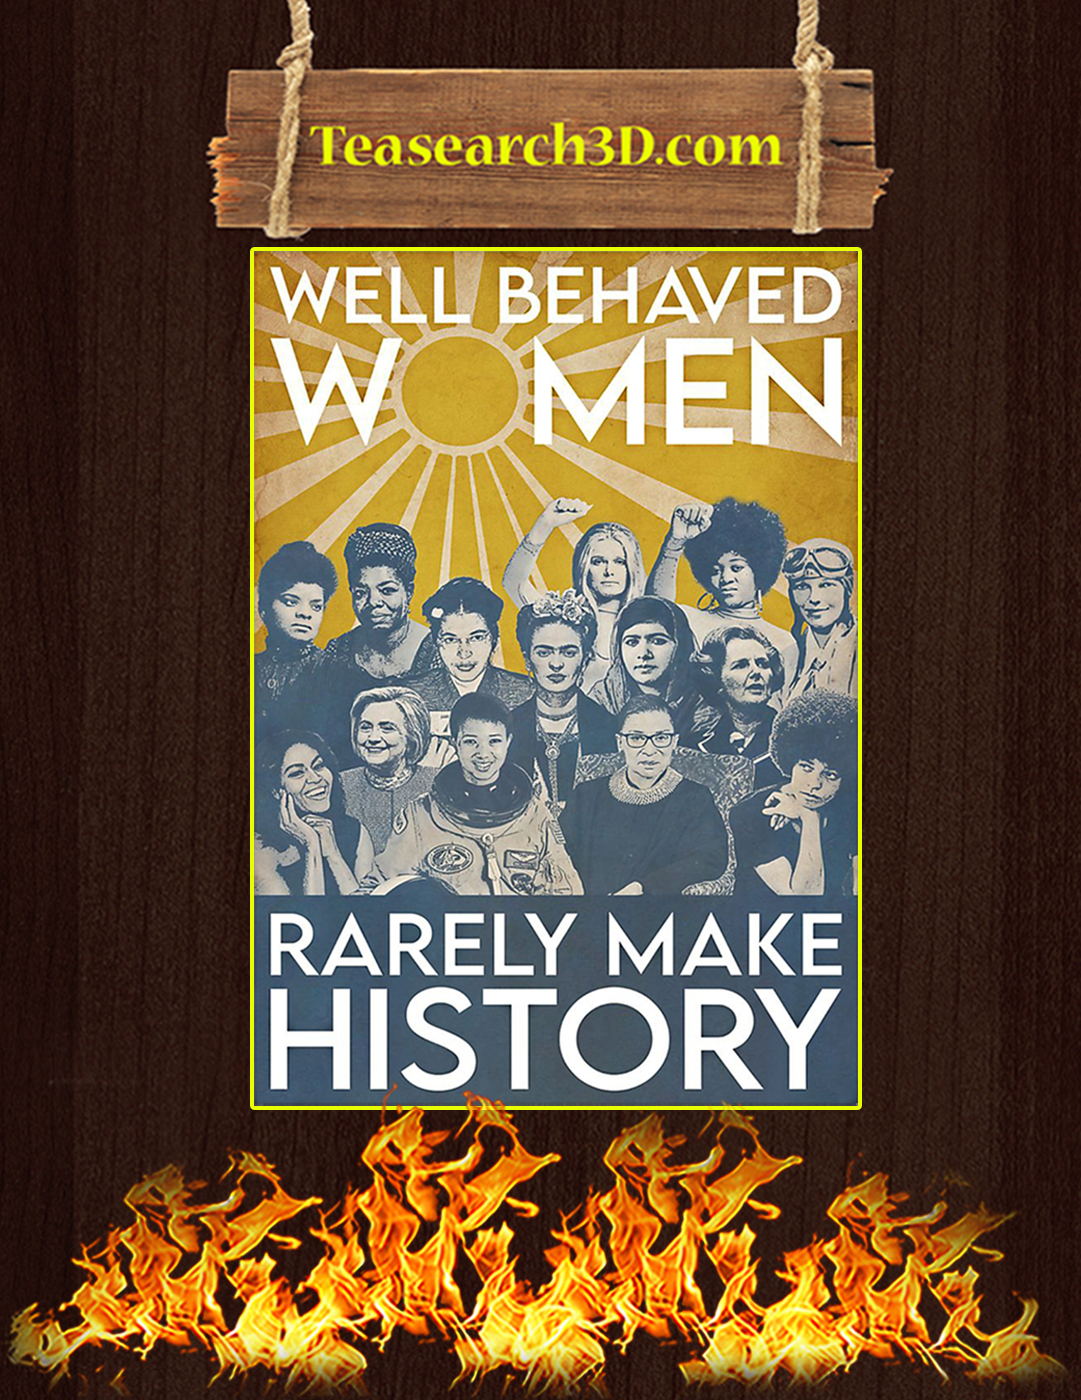 Well behaved women rarely make history poster A2